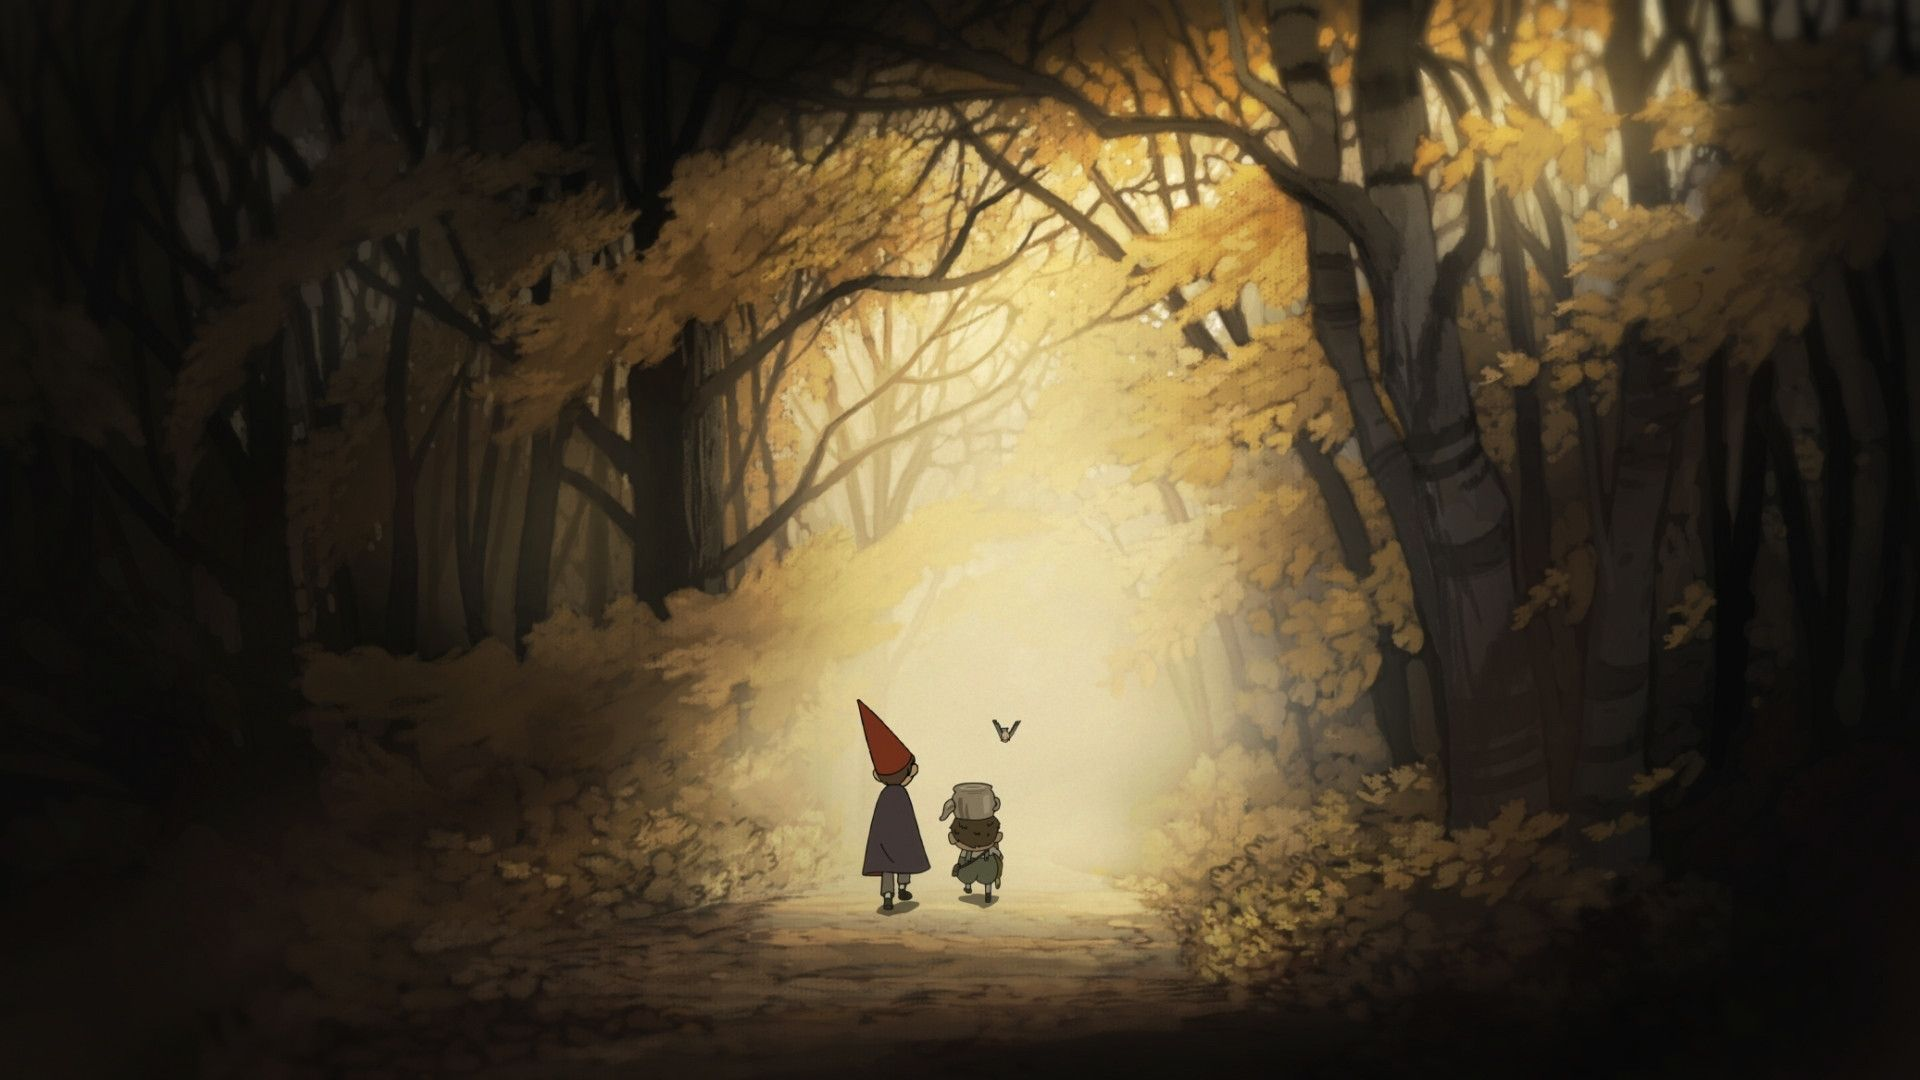 10 Most Popular Over The Garden Wall Desktop Wallpaper Full Hd 1080p For Pc Background Over The Garden Wall Garden Wall Wall Wallpaper